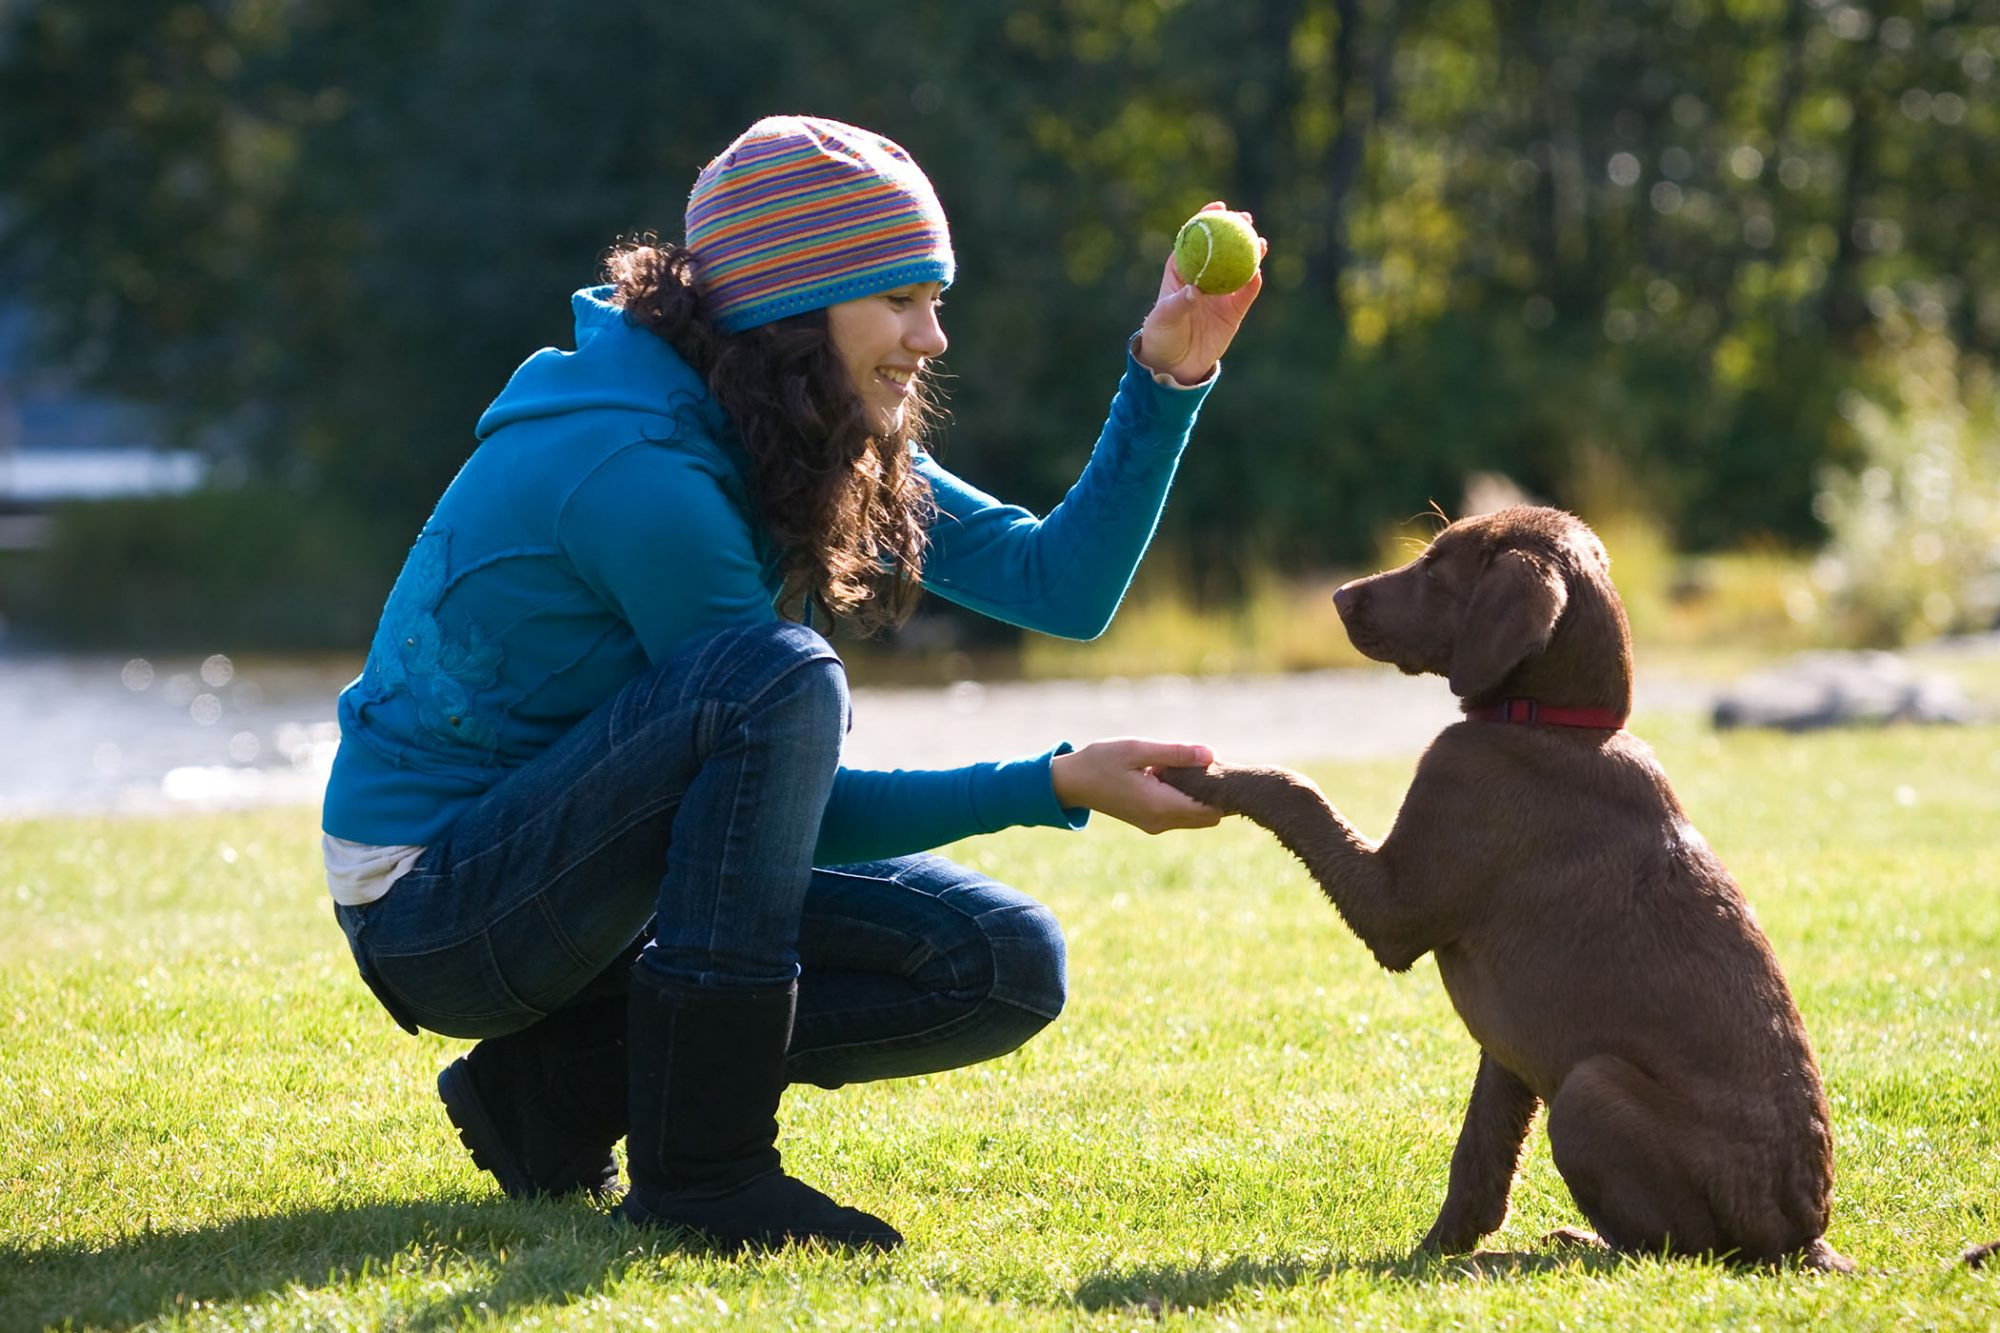 woman training dog to fetch in park